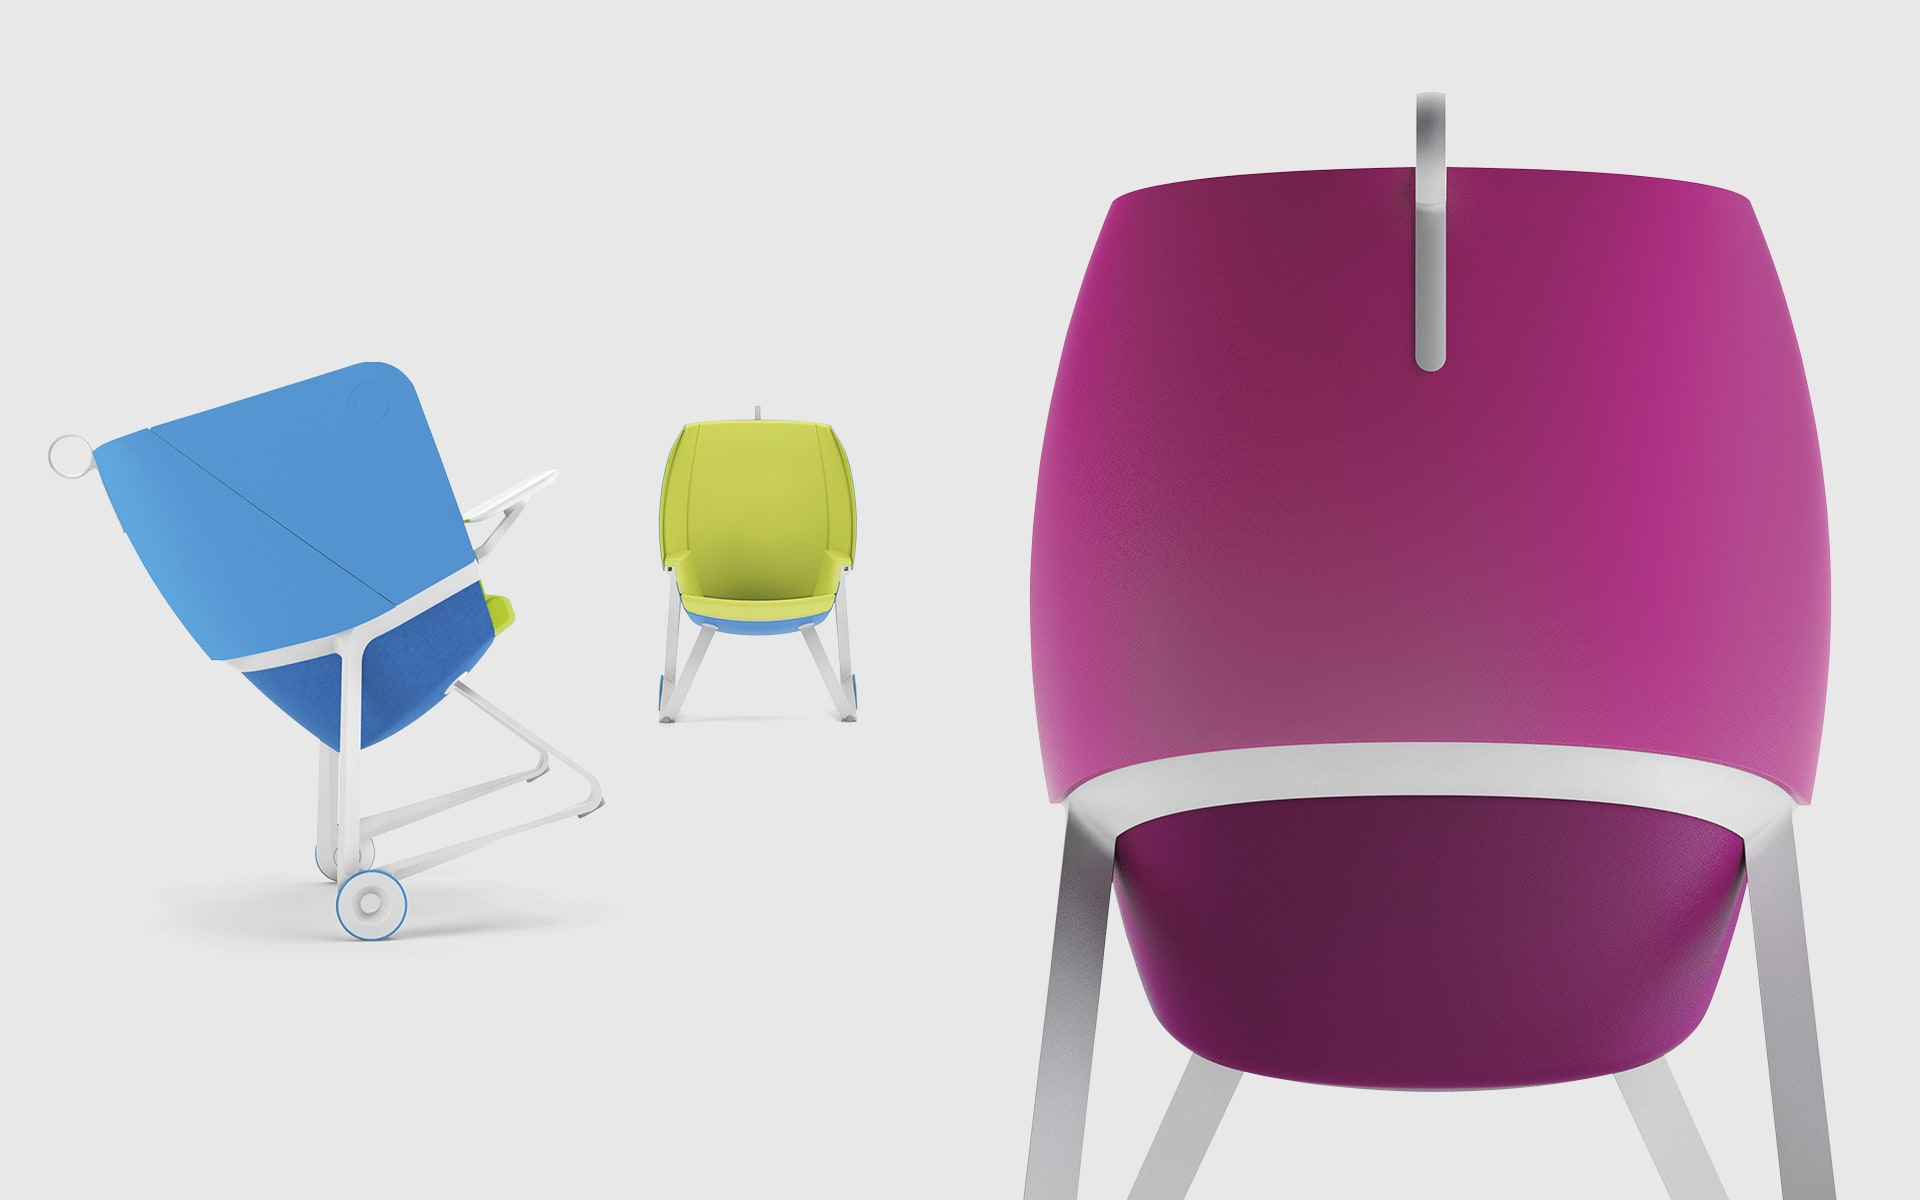 Three BASF TeamUP chairs by ITO Design in bright blue, bright green and shocking pink